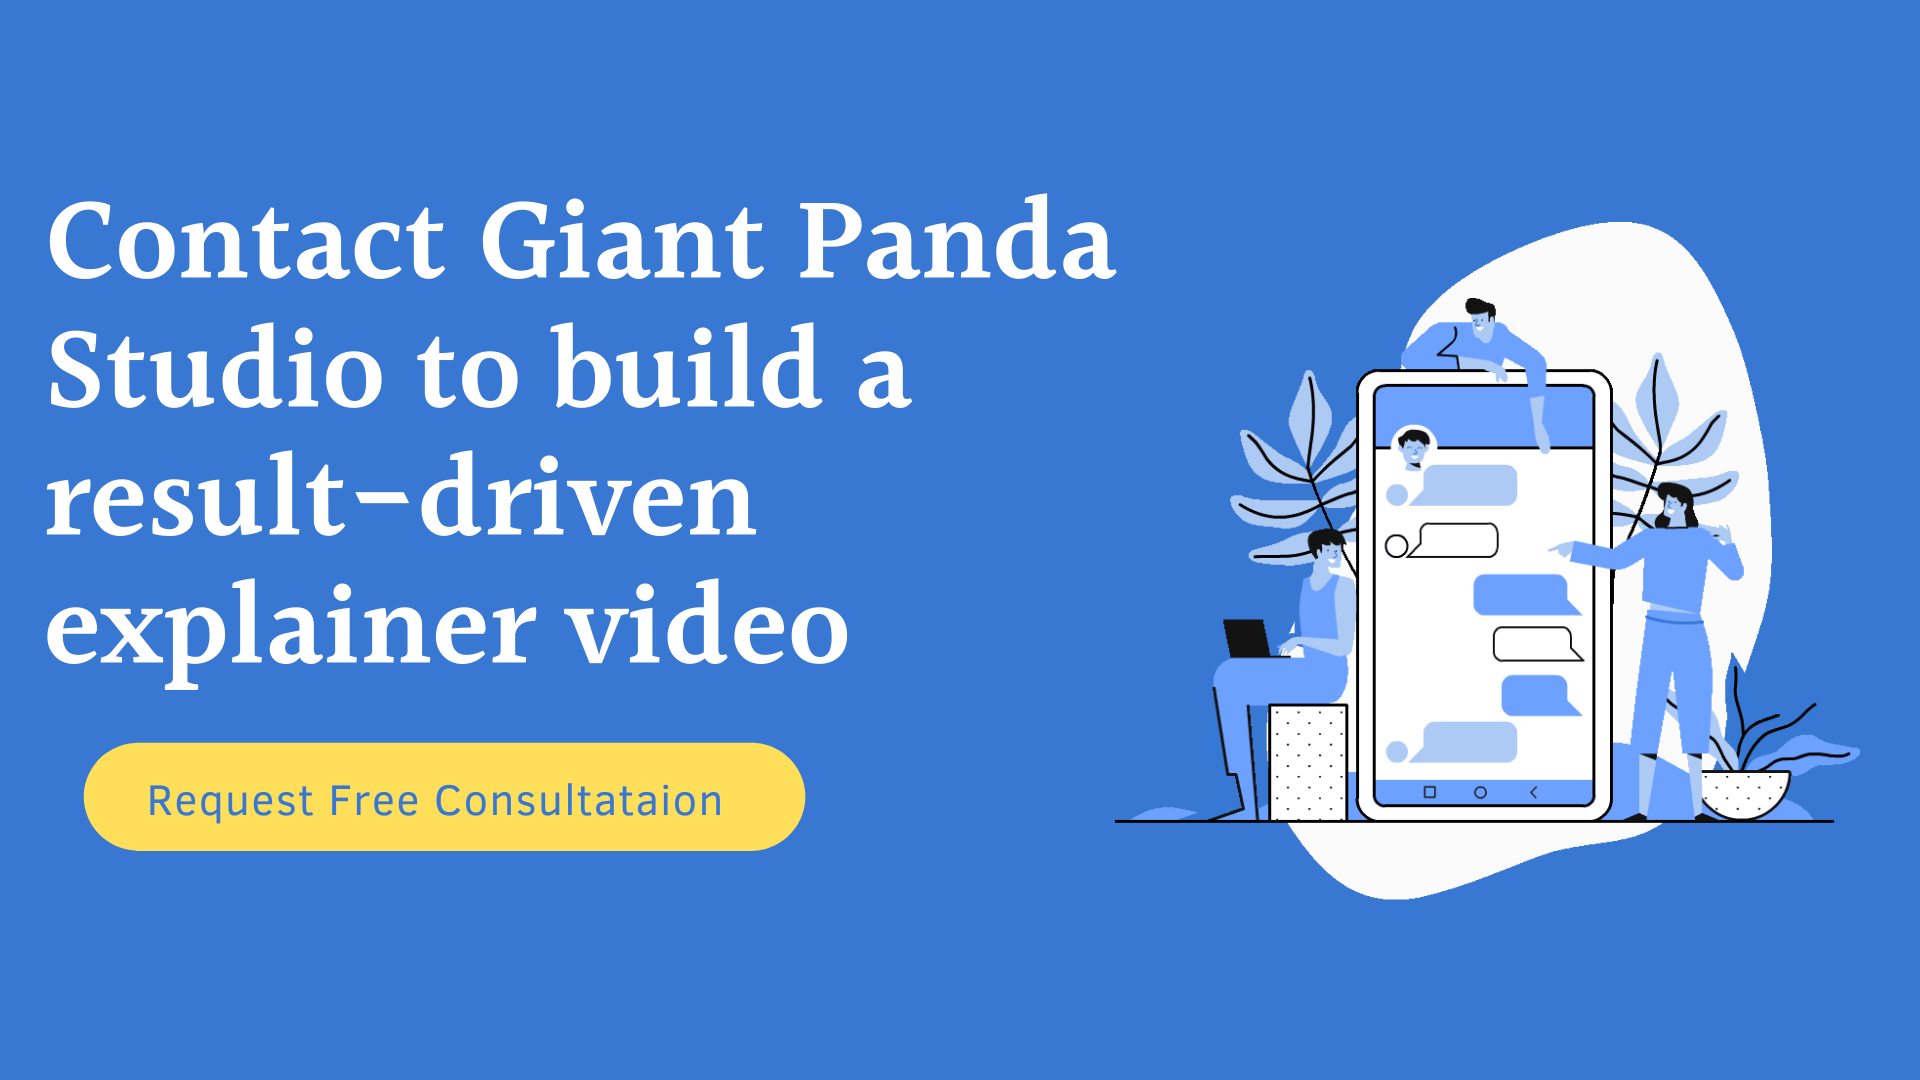 Contact Giant Panda Studio to create an explainer video